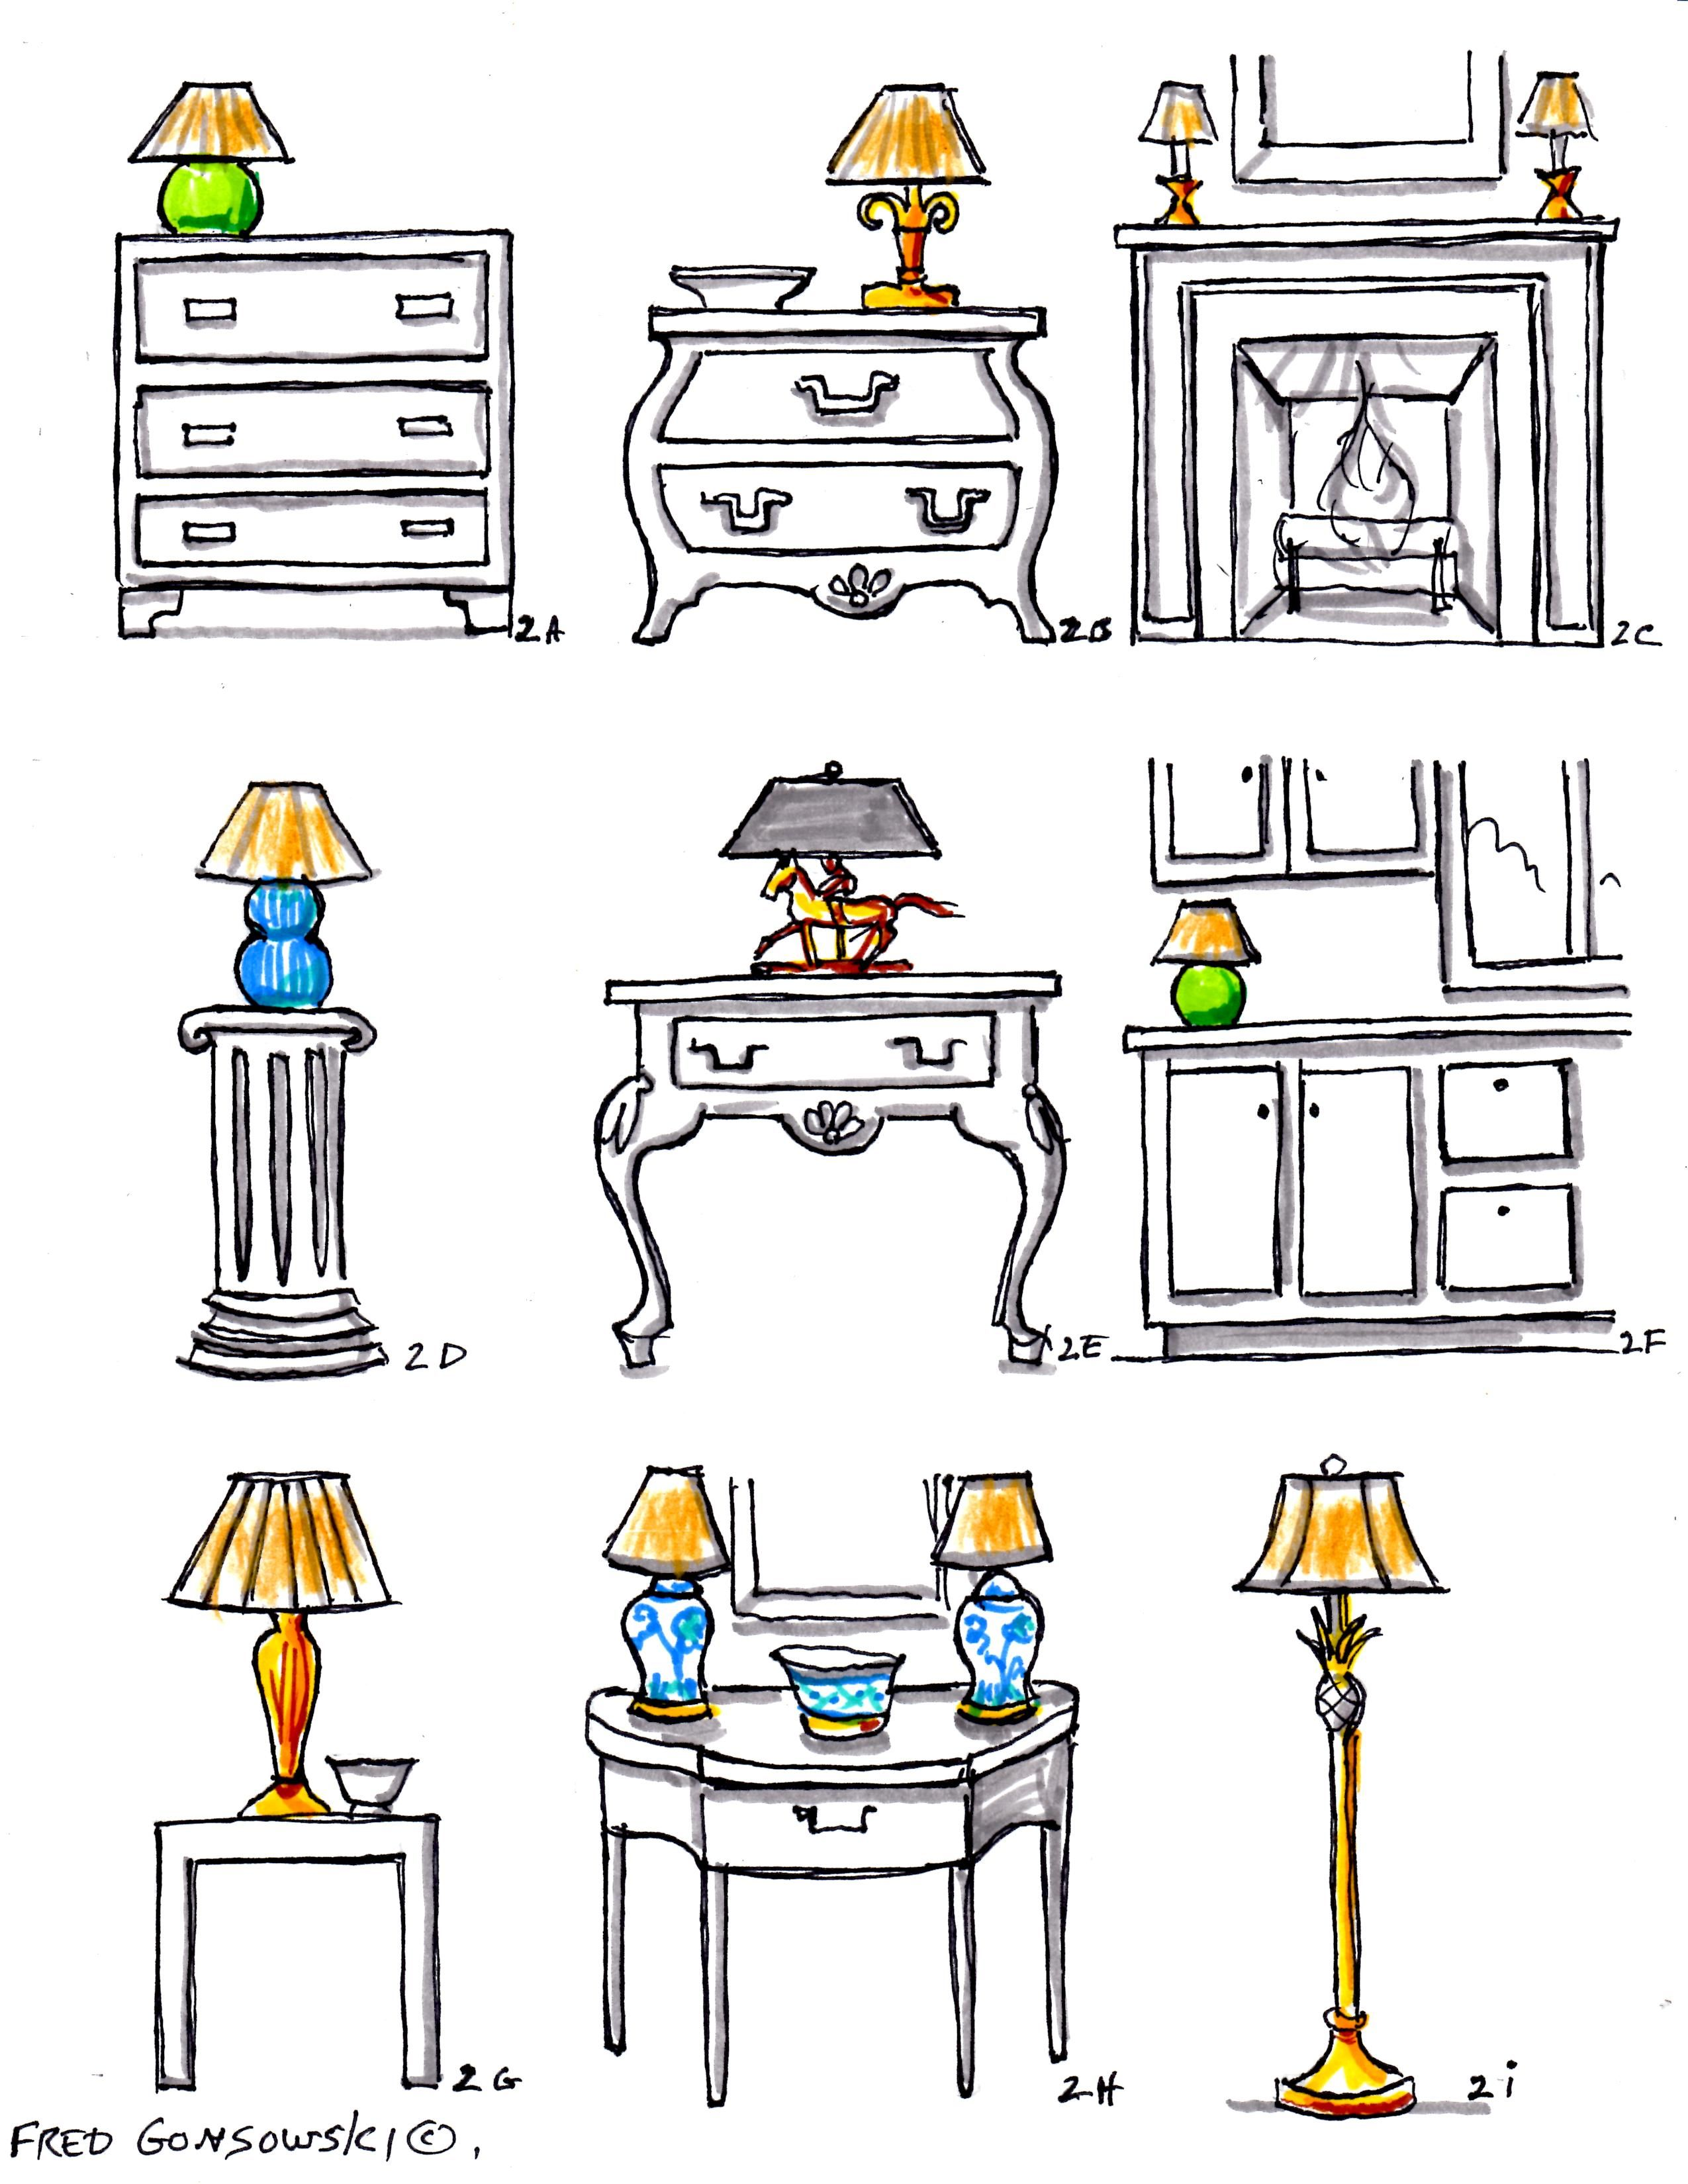 Table lamp height - Interior Decorating With Accent Lamps When Matching An End Table And Table Lamp Their Combined Height Should Be 58 To 64 Inches